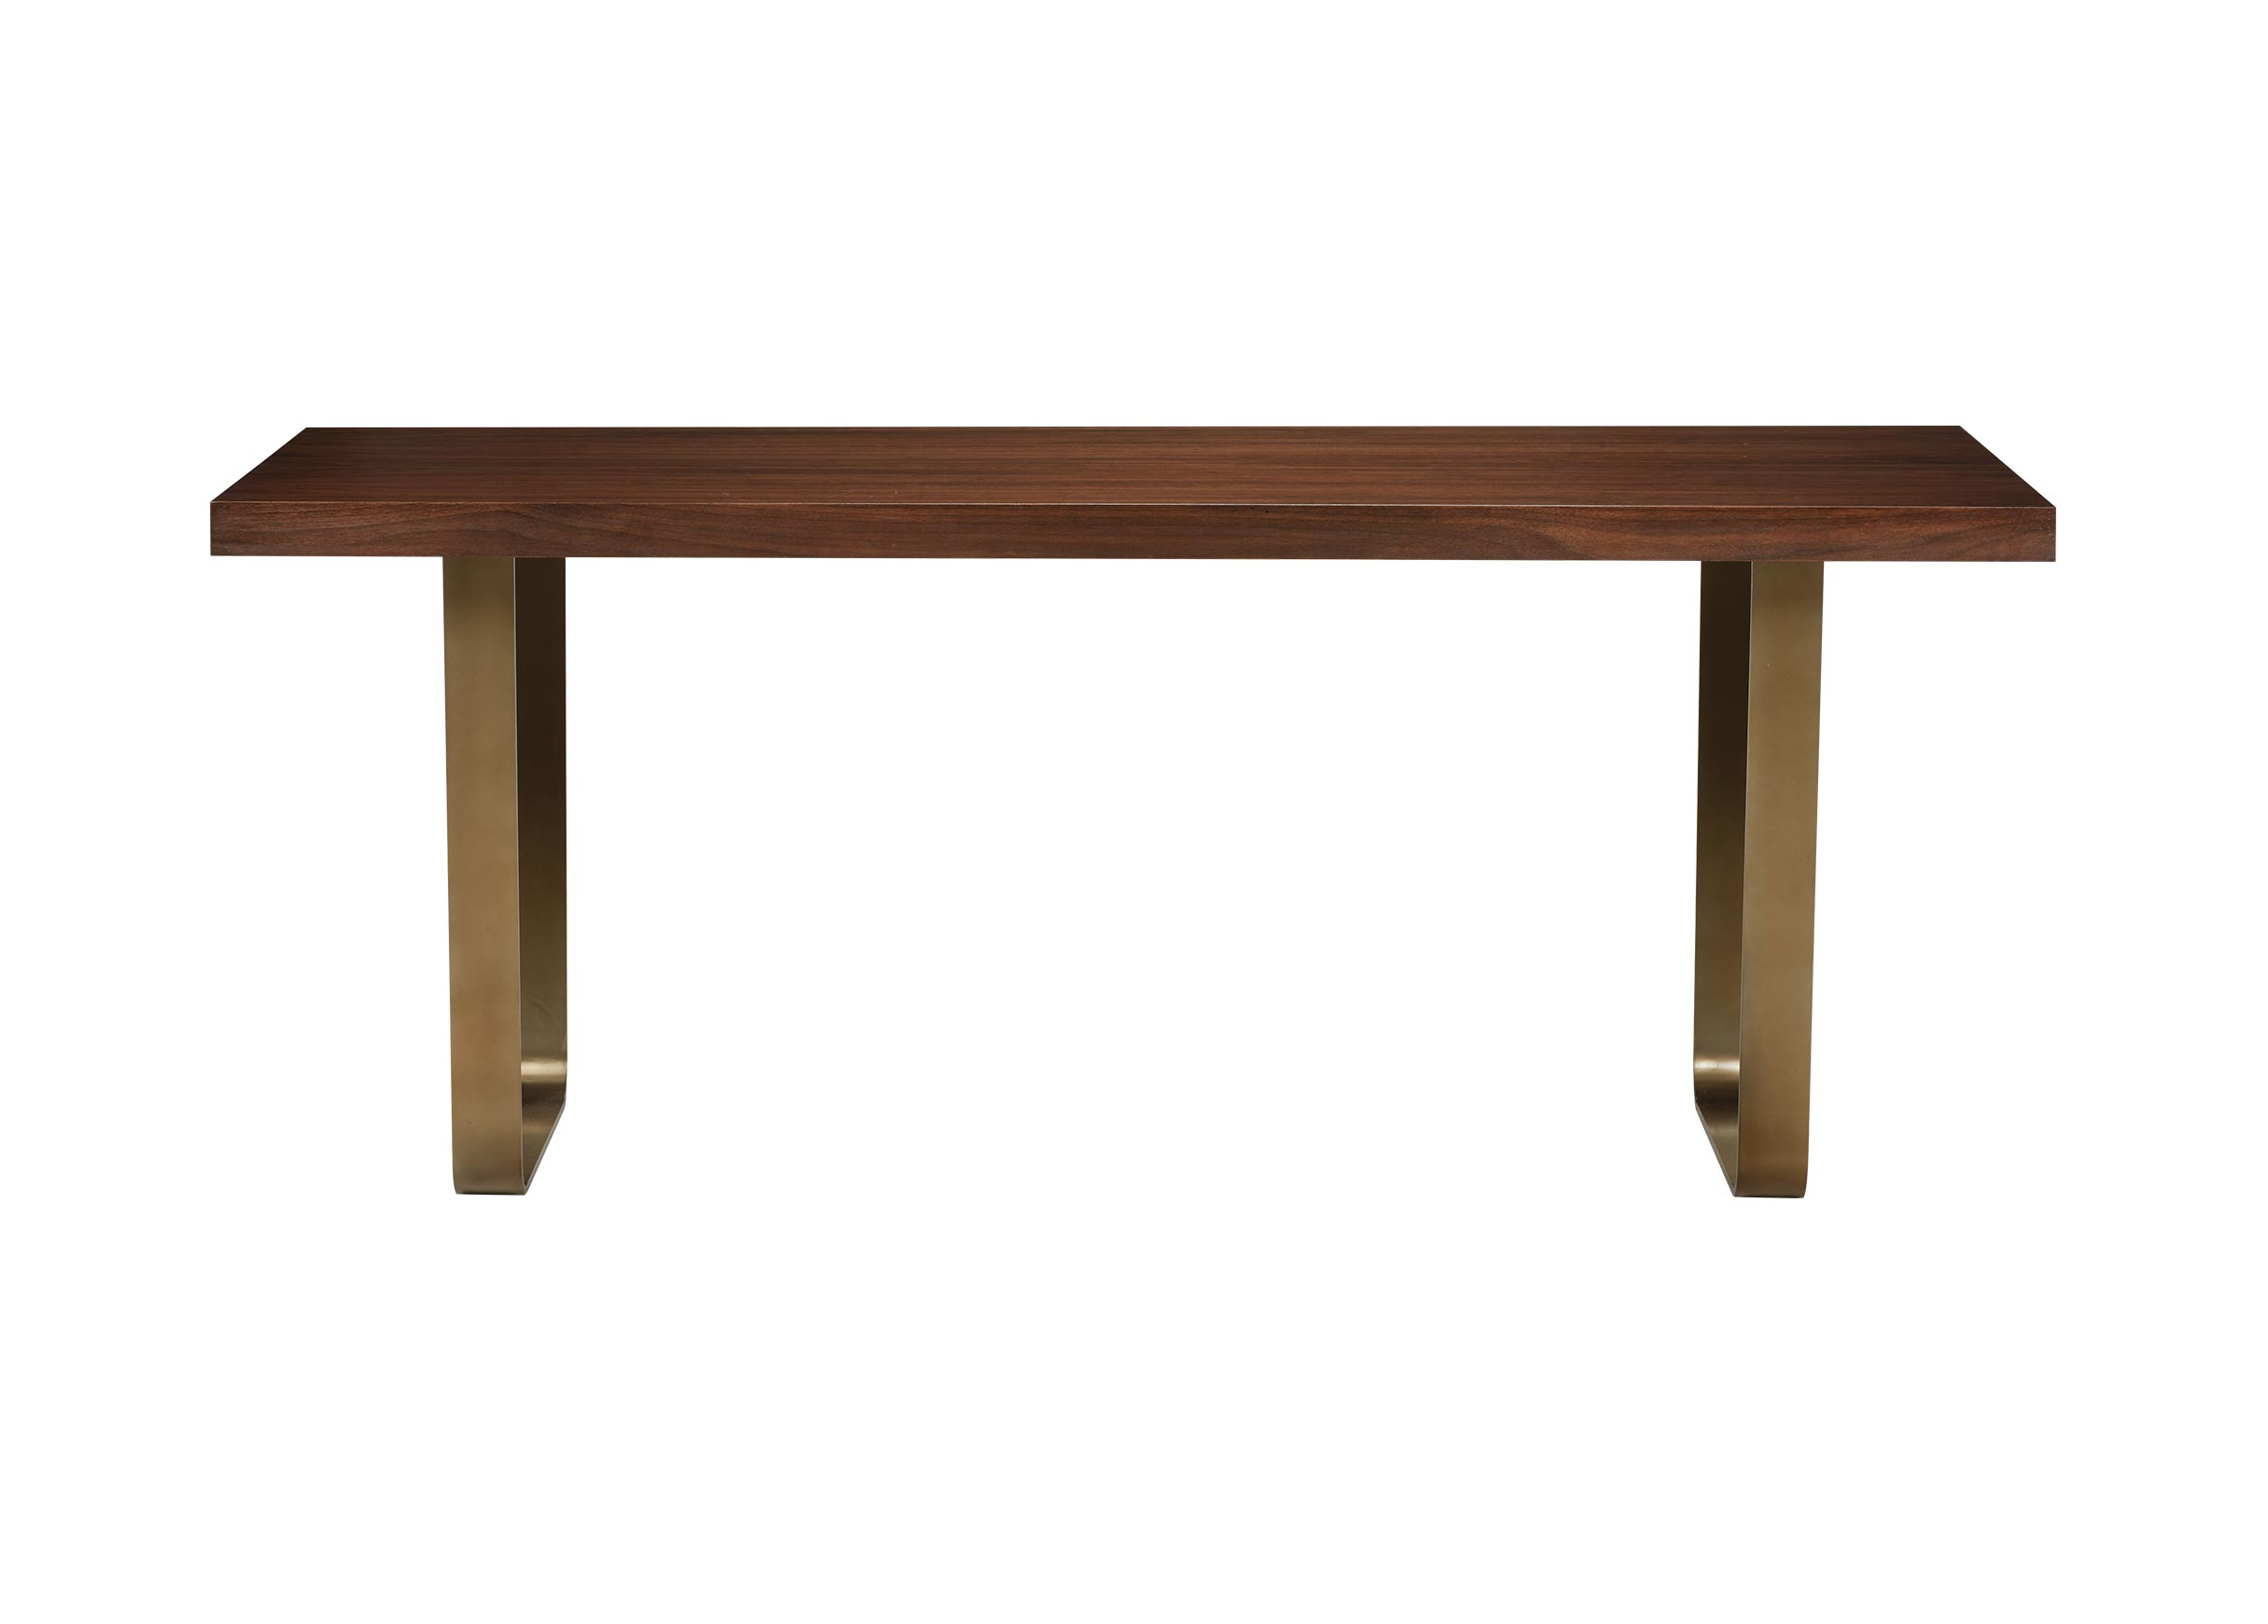 Most Recently Released Mid Century Rectangular Top Dining Tables With Wood Legs For Hoyt Wood And Metal Midcentury Modern Dining Table (View 10 of 30)